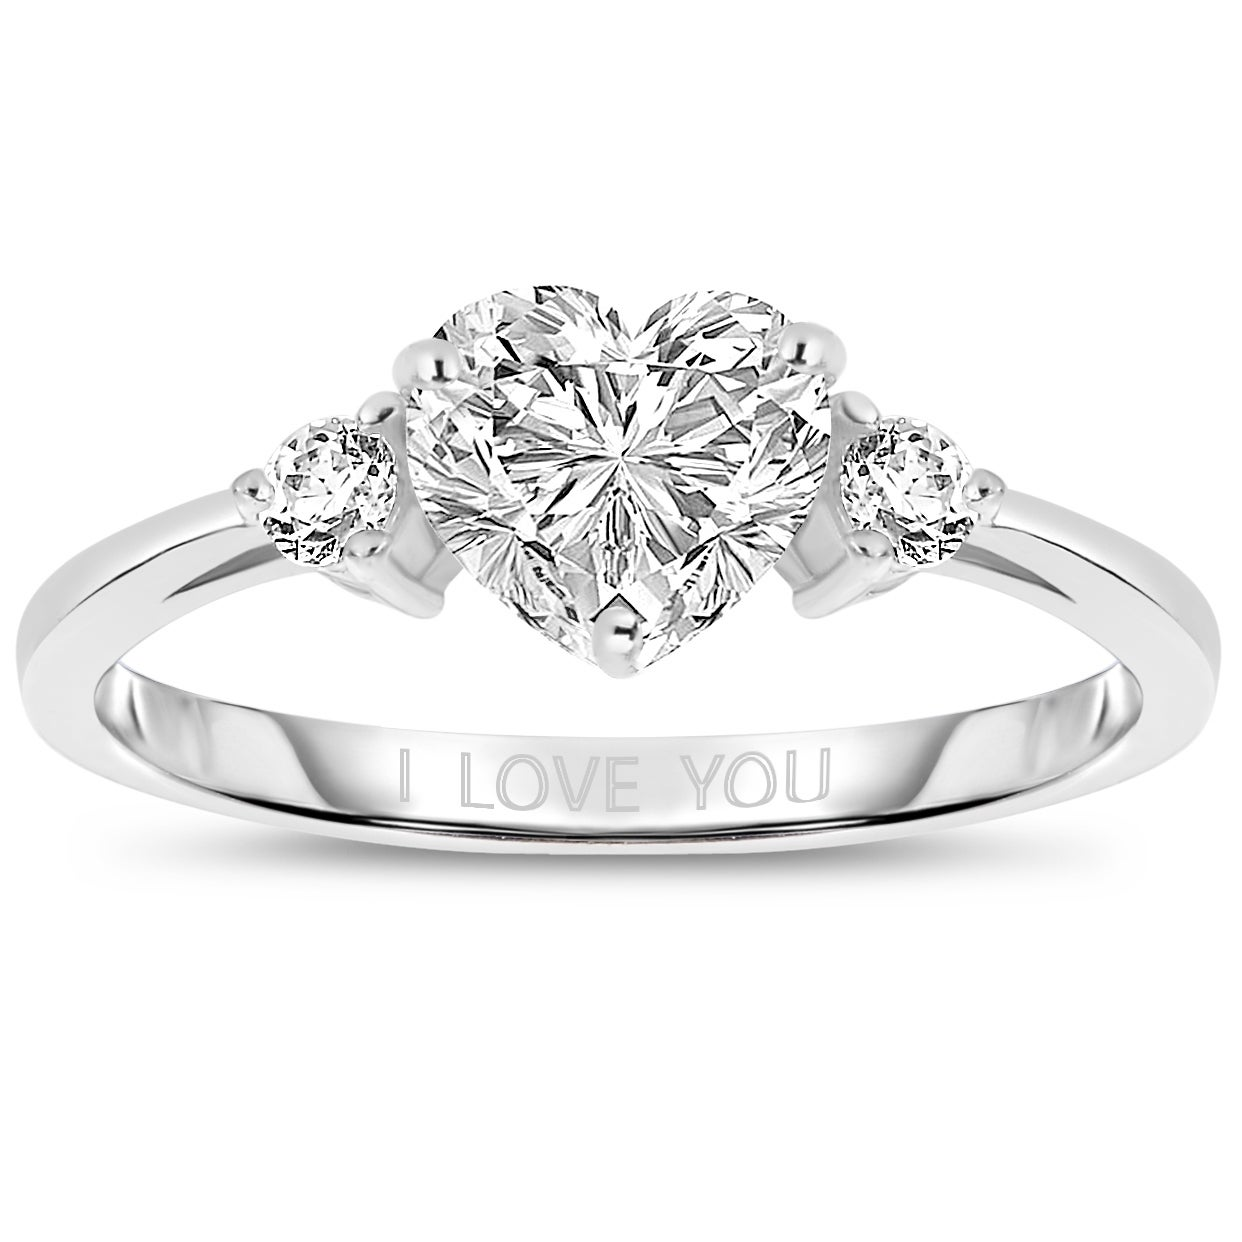 Collette Z Sterling Silver With Rhodium Plated Clear Heart And Round Cubic Zirconia Three Stone I Love You Engagement Ring On Sale Overstock 8672638